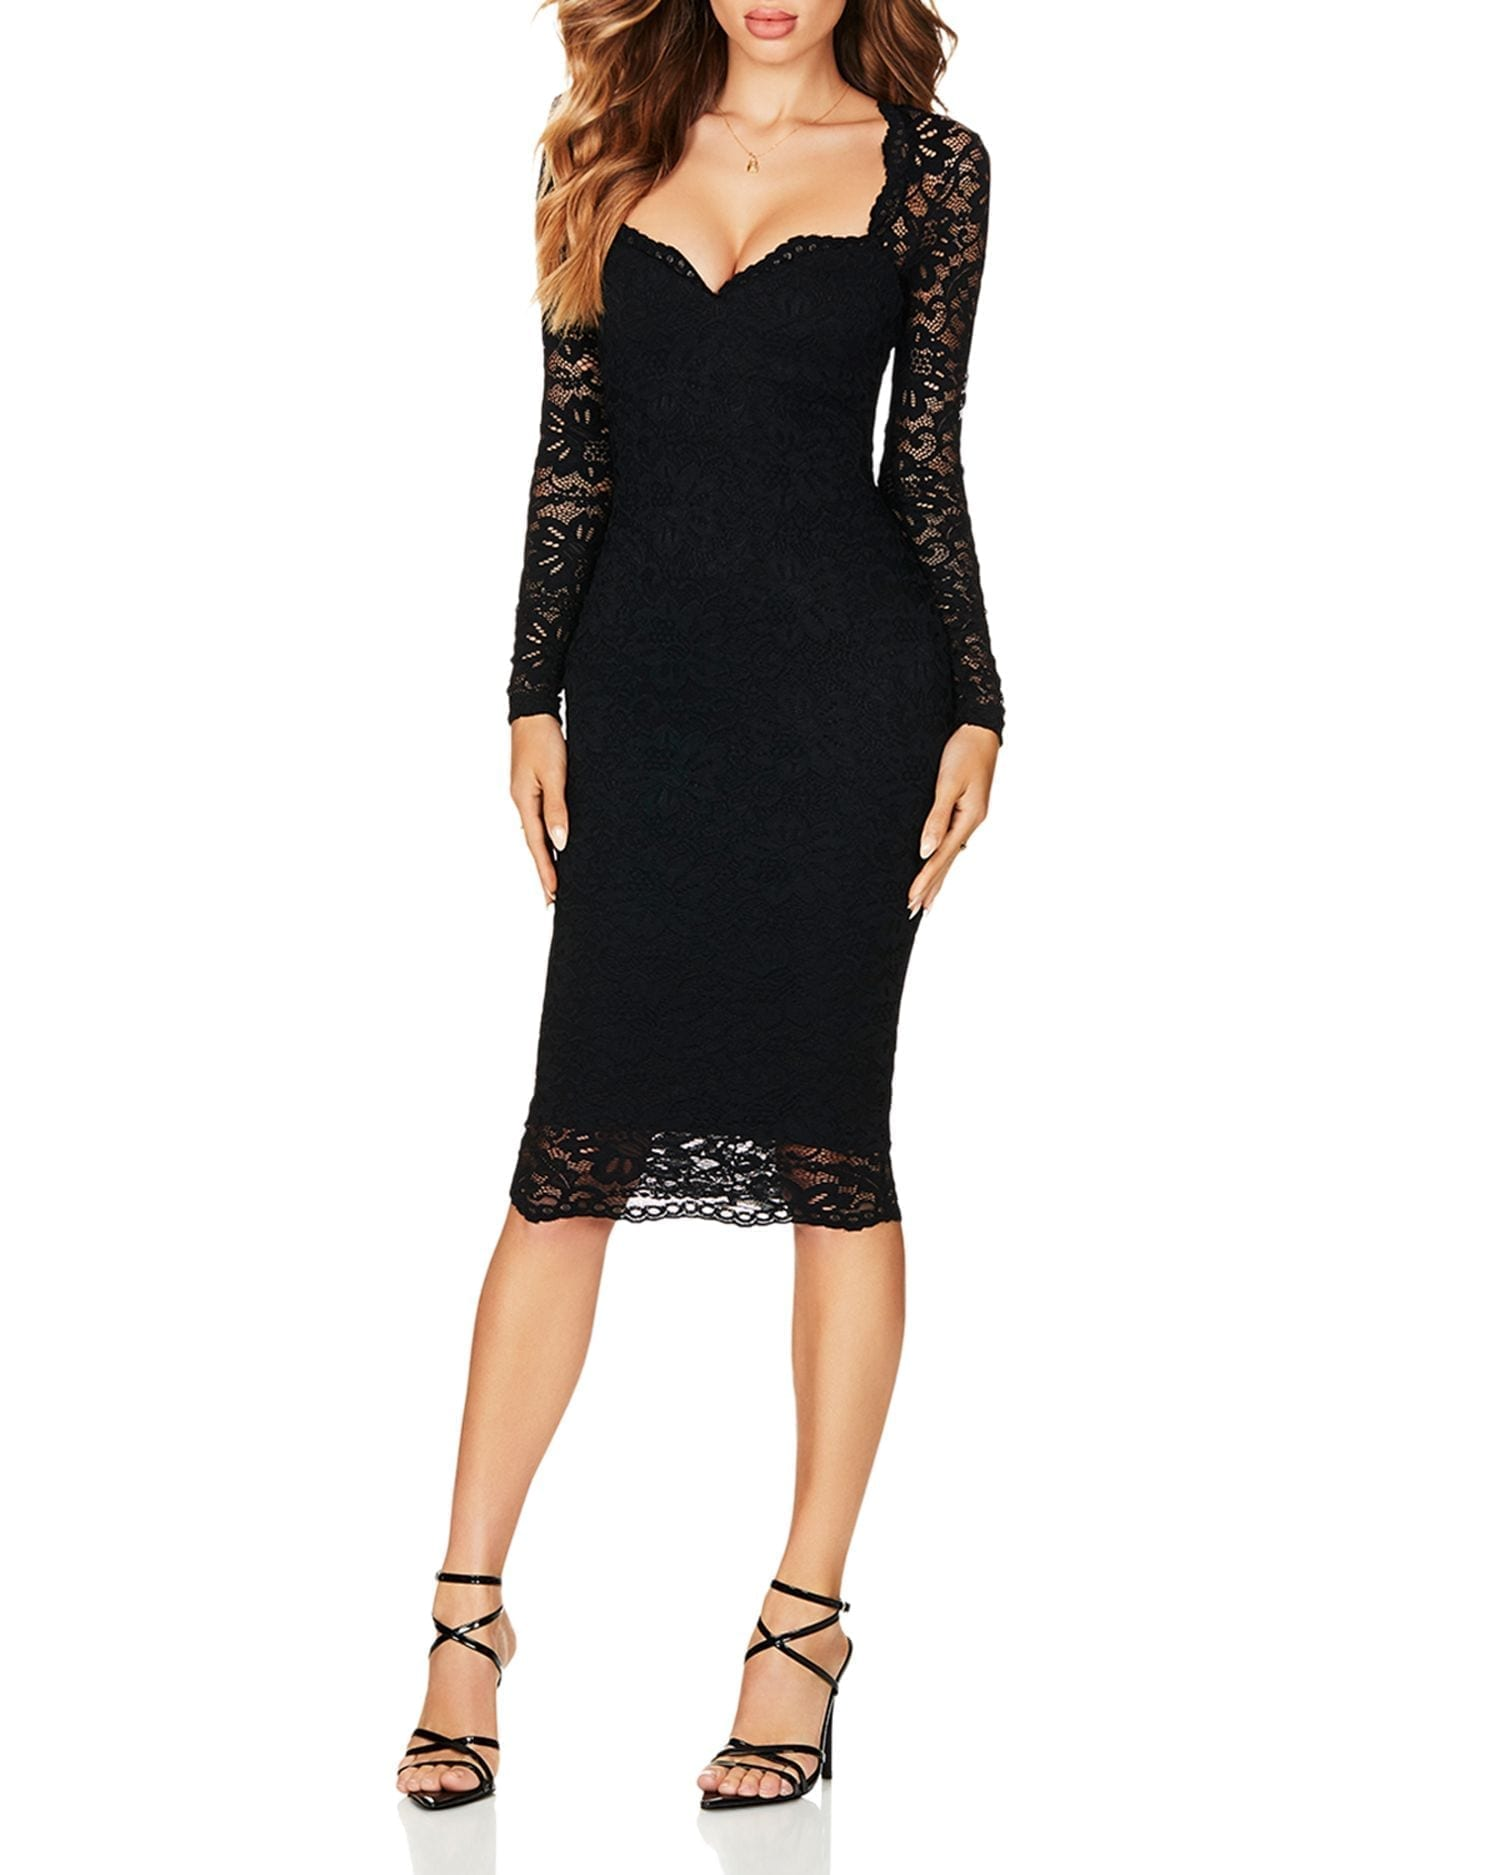 NOOKIE Romance Lace Dress